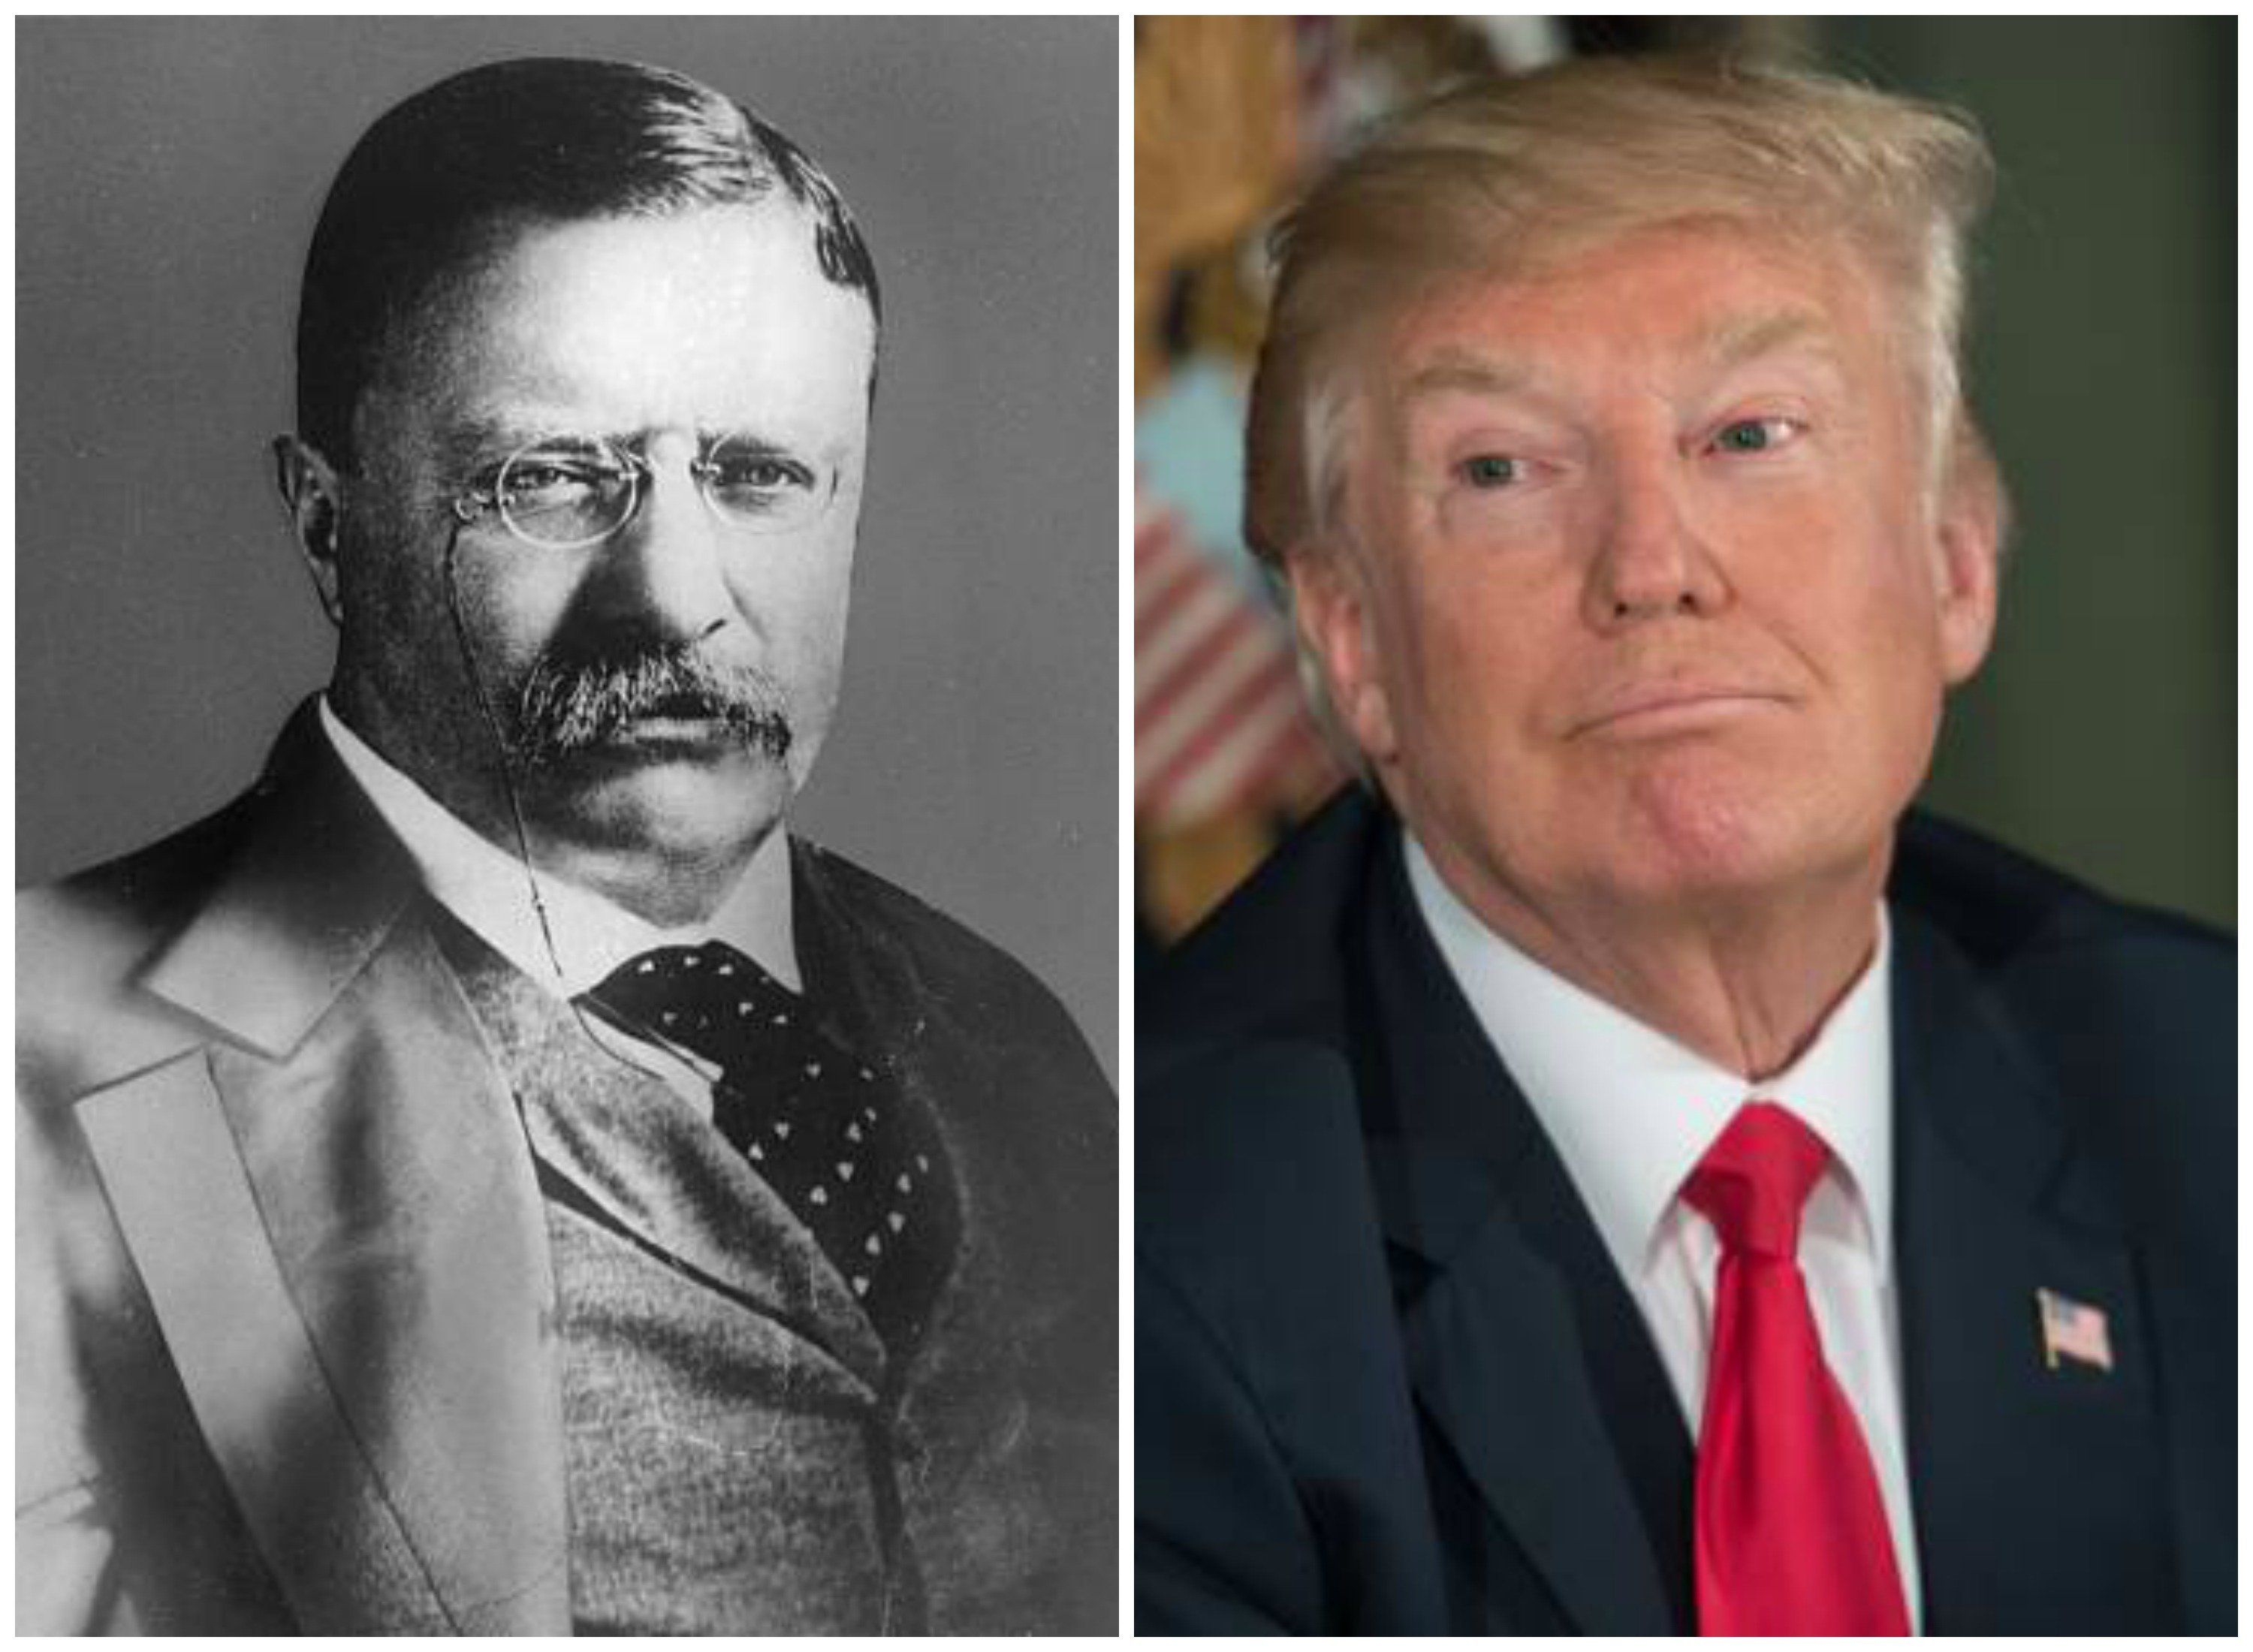 Pence likens Trump to one of his heroes: Teddy Roosevelt